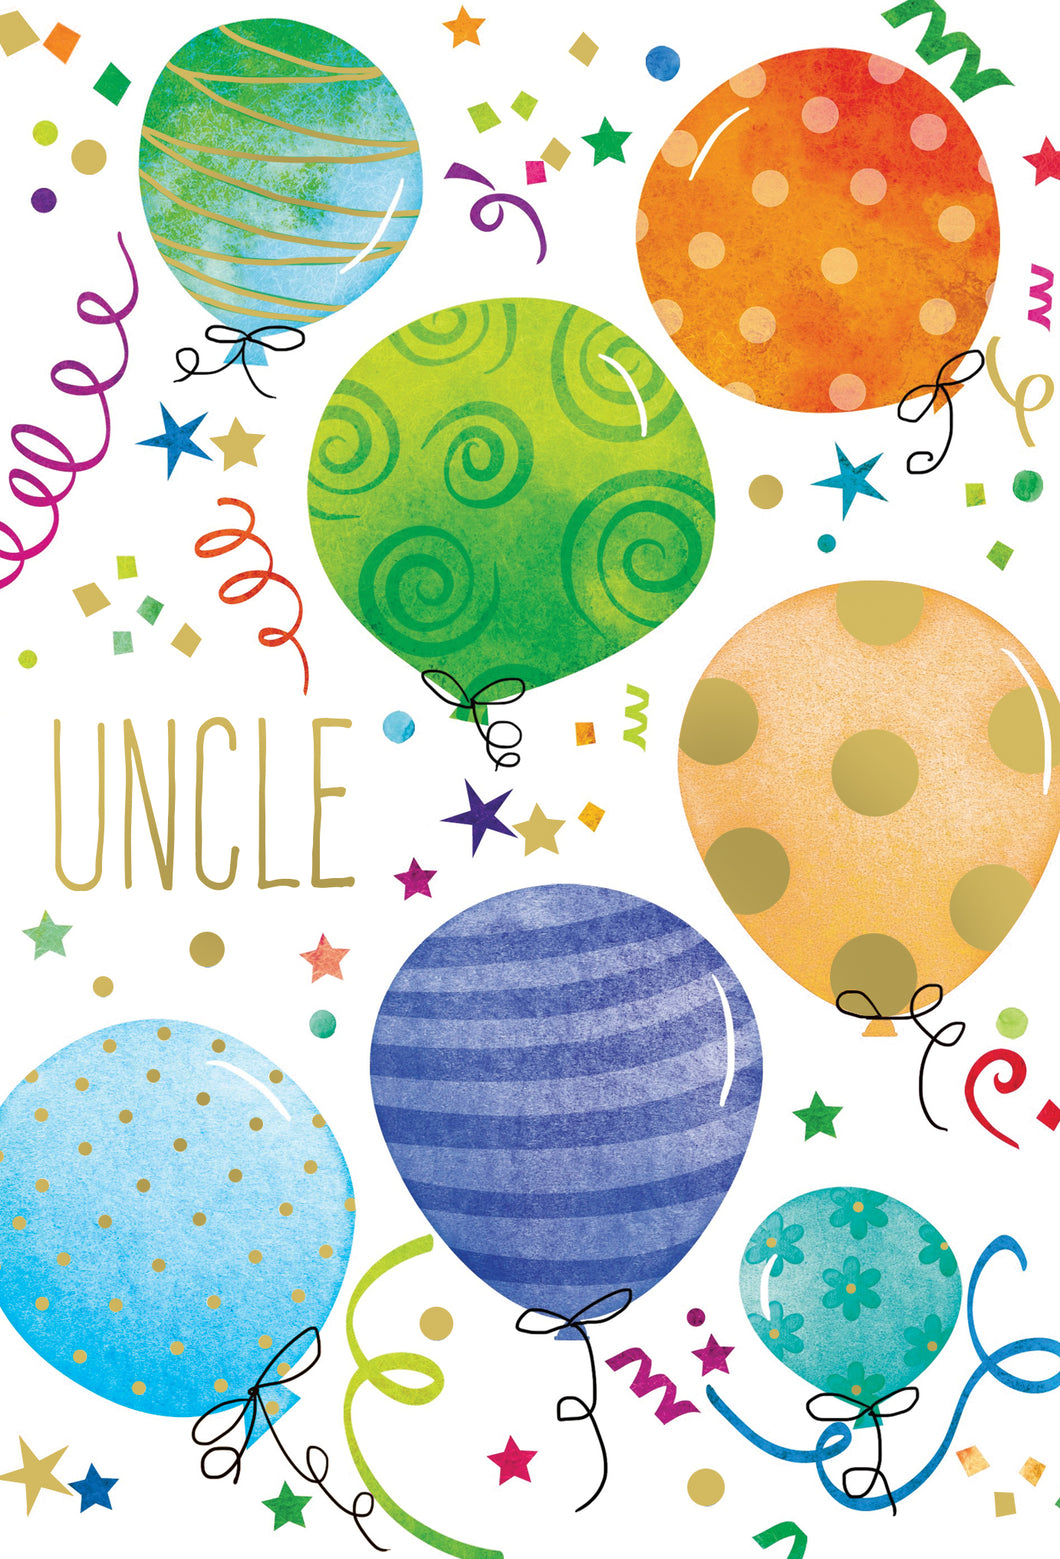 Birthday Uncle Card Balloons And Confetti